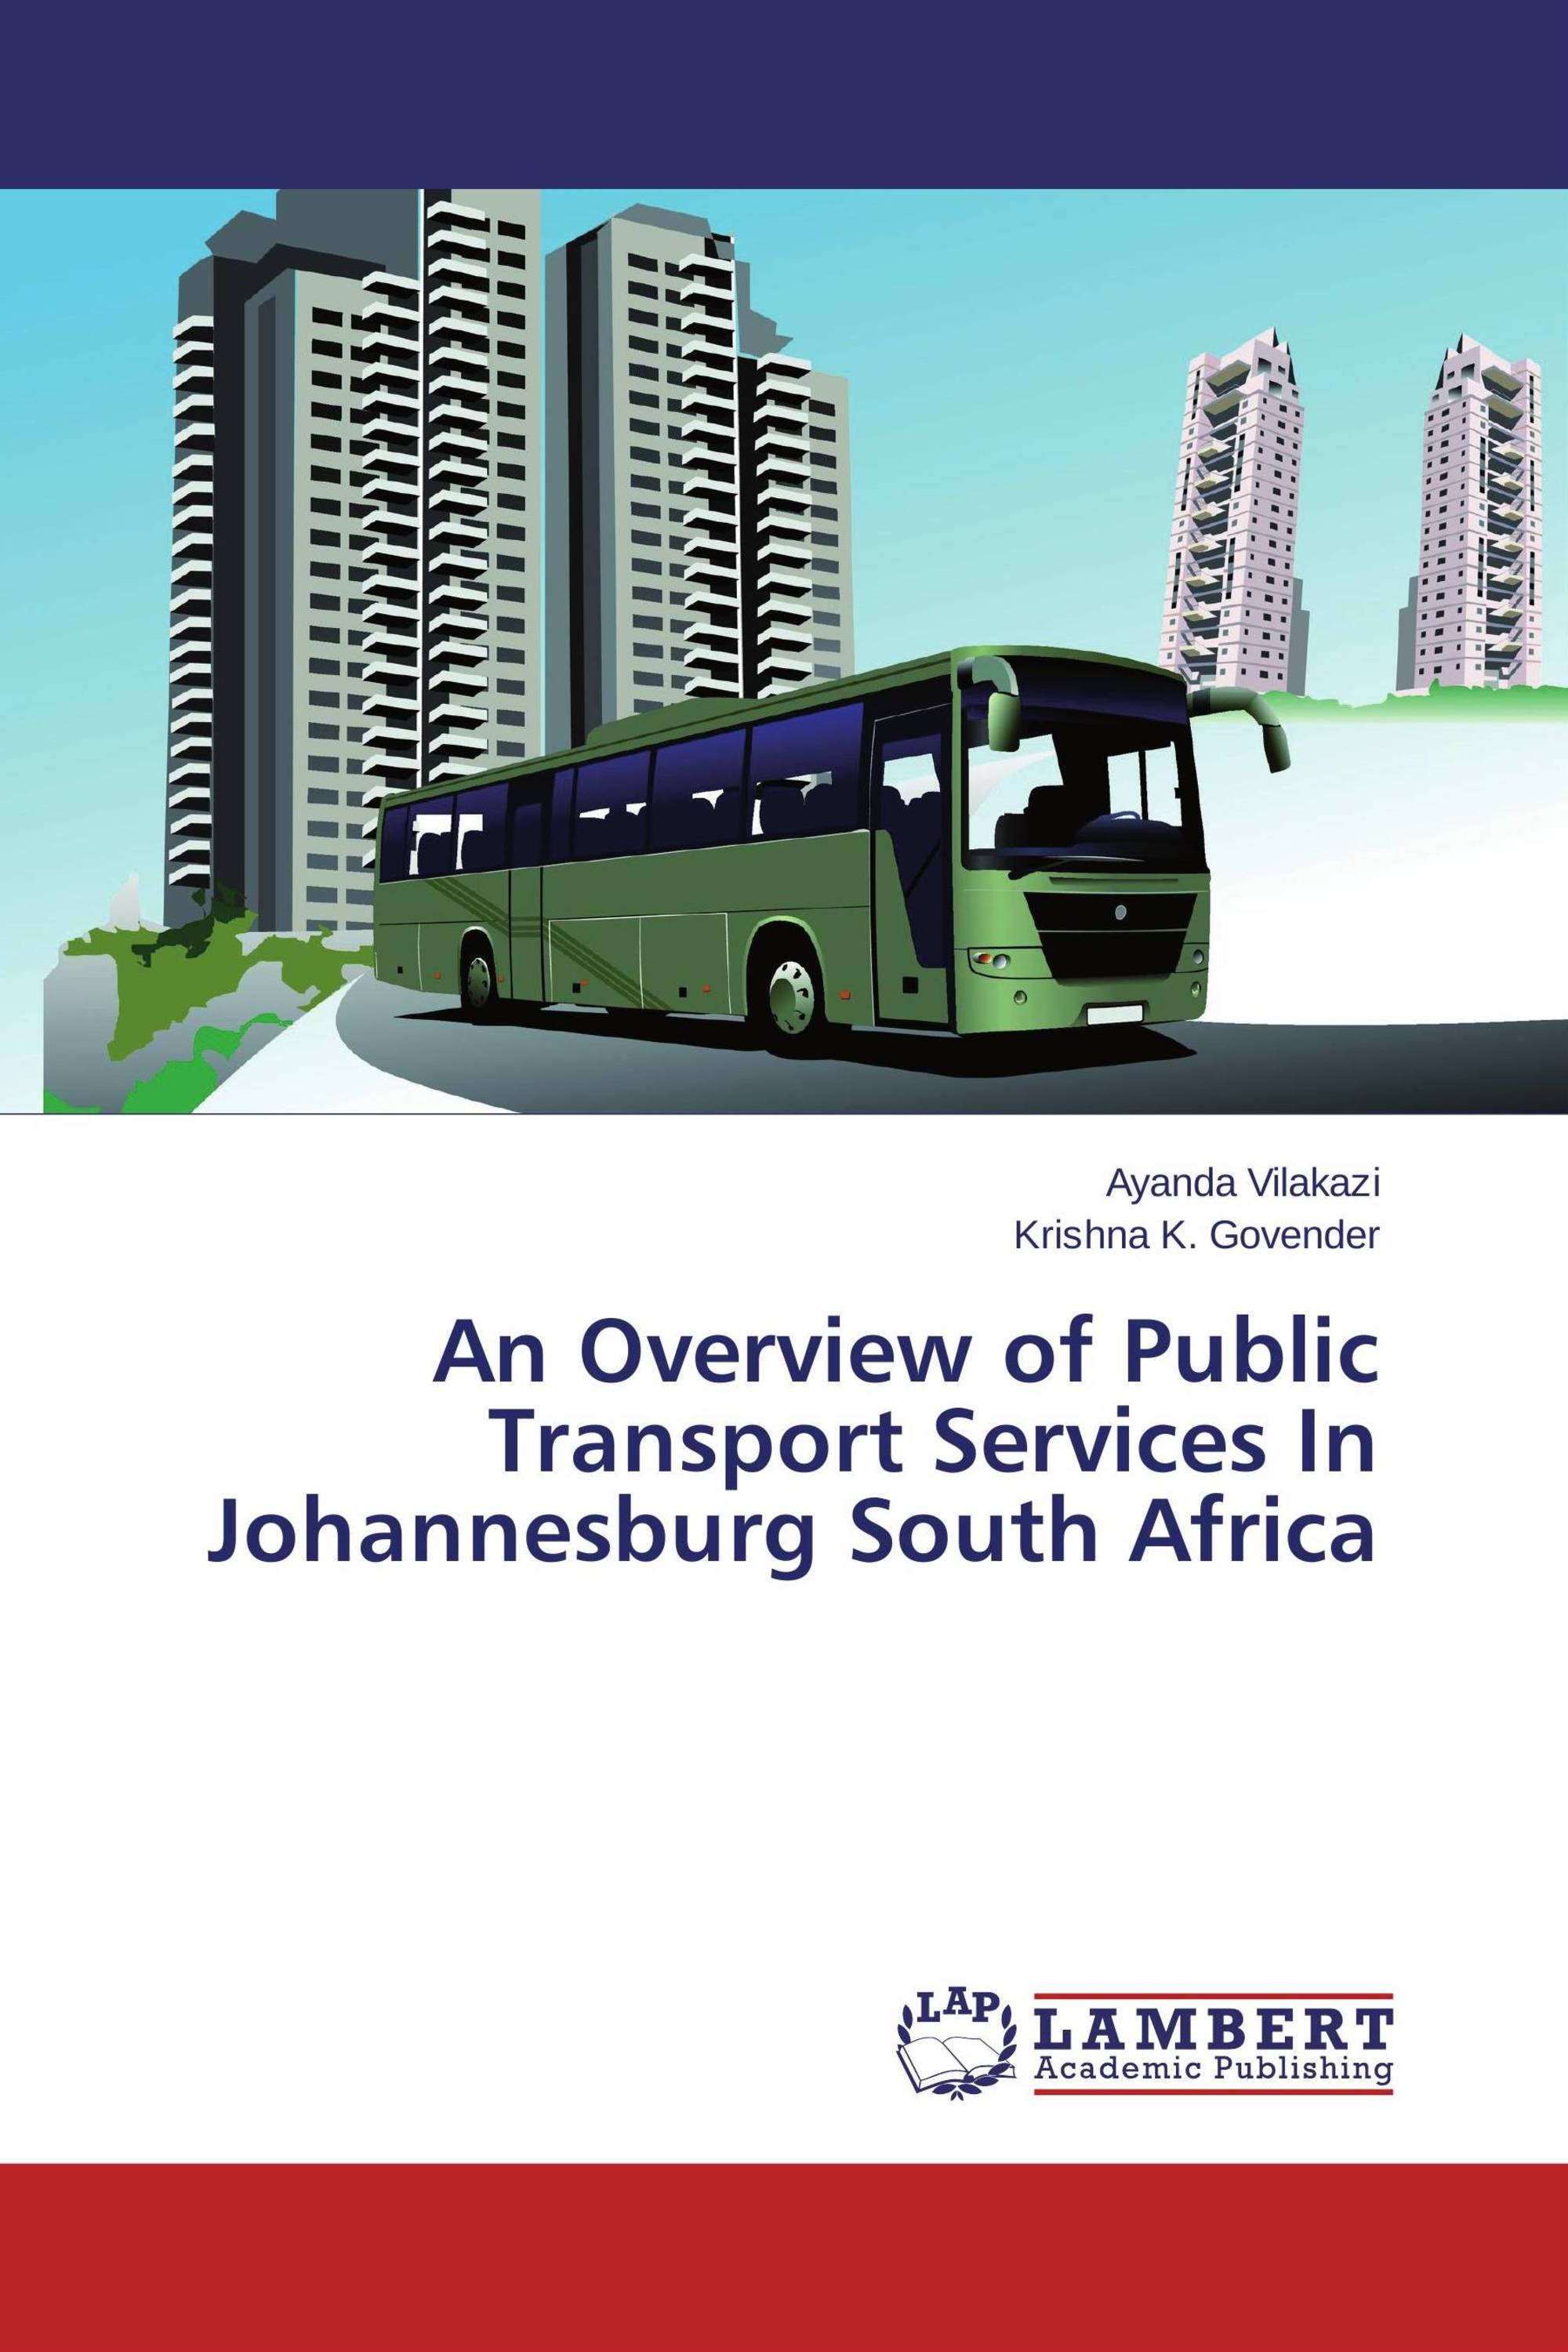 An Overview of Public Transport Services In Johannesburg South Africa